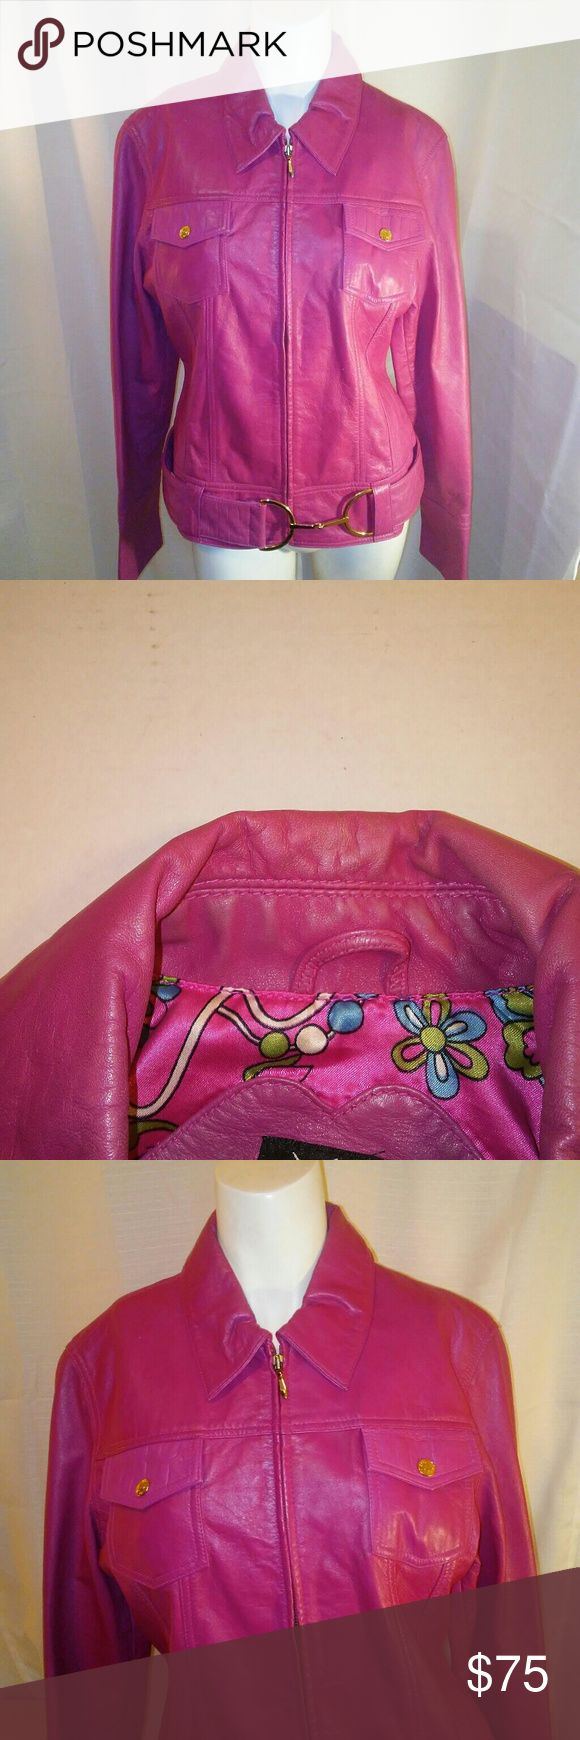 Wilson Leather Maxima Women's Hot Pink Jacket Med pre-owned excellent condition light leather wear at neckline see photos extra buttons in pocket 20 pit to pit 25 sleeve 16 shoulder to shoulder 22 long 36 hemline (waist) Wilsons Leather Jackets & Coats